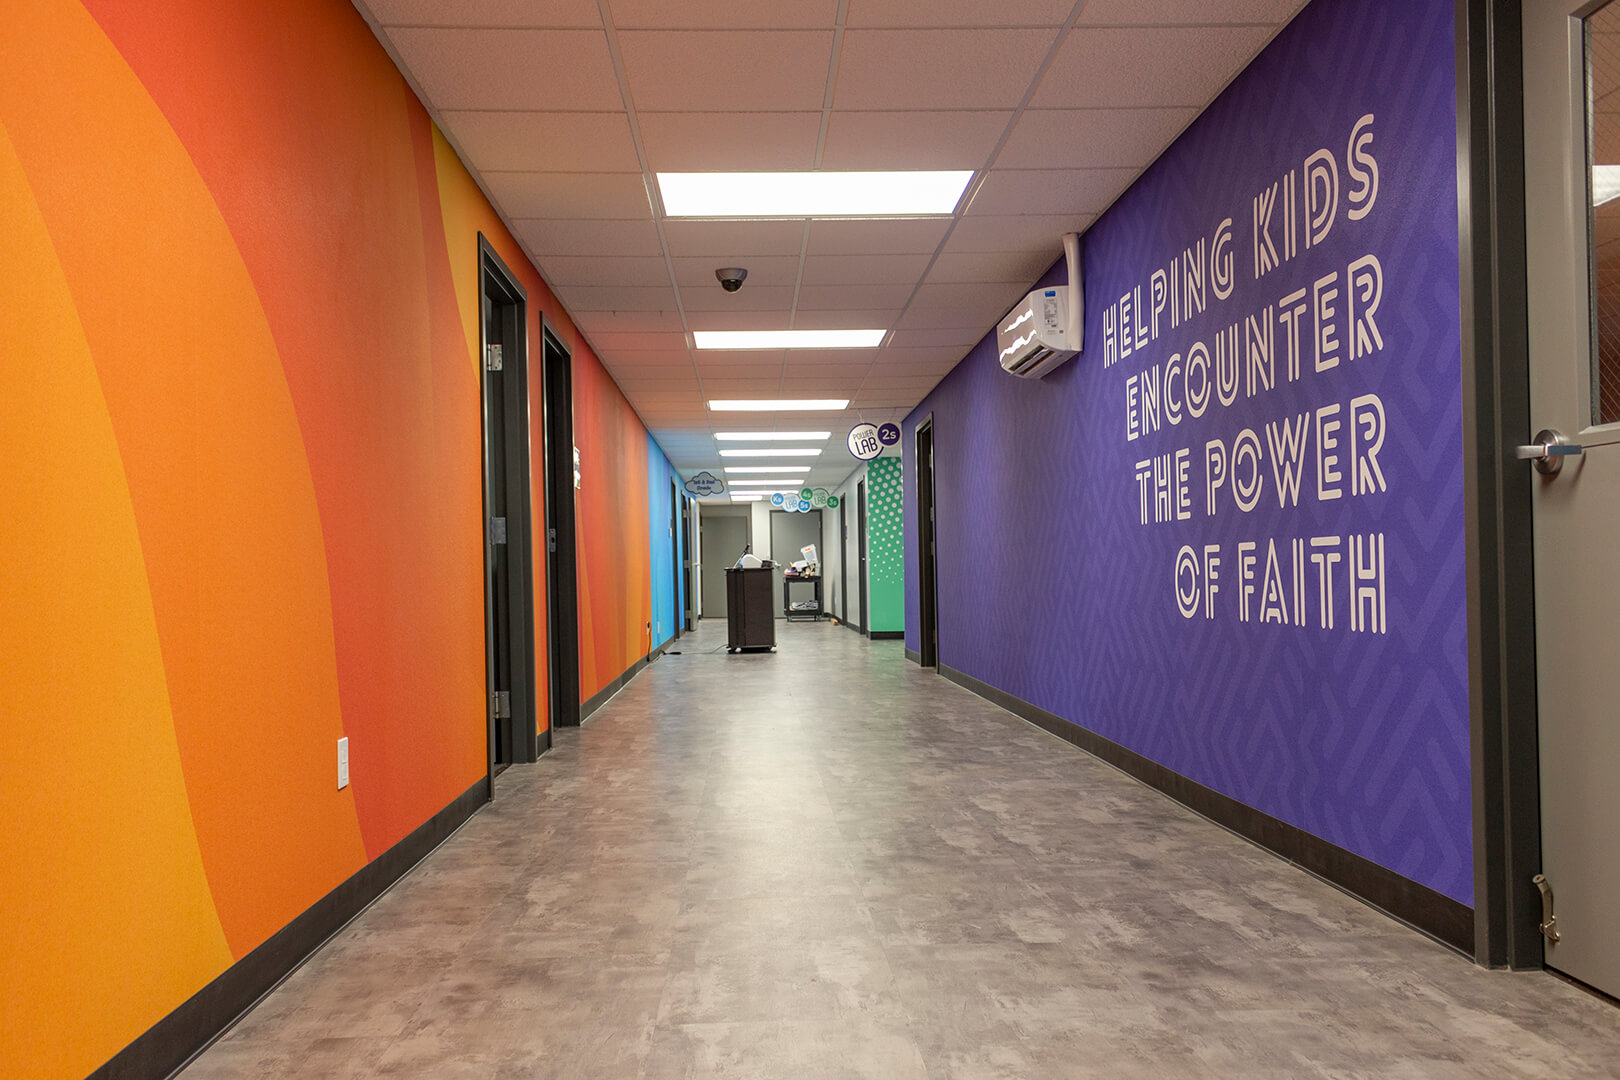 Hallway at Christian Celebration Center, showing orange, blue, and purple wallpapers